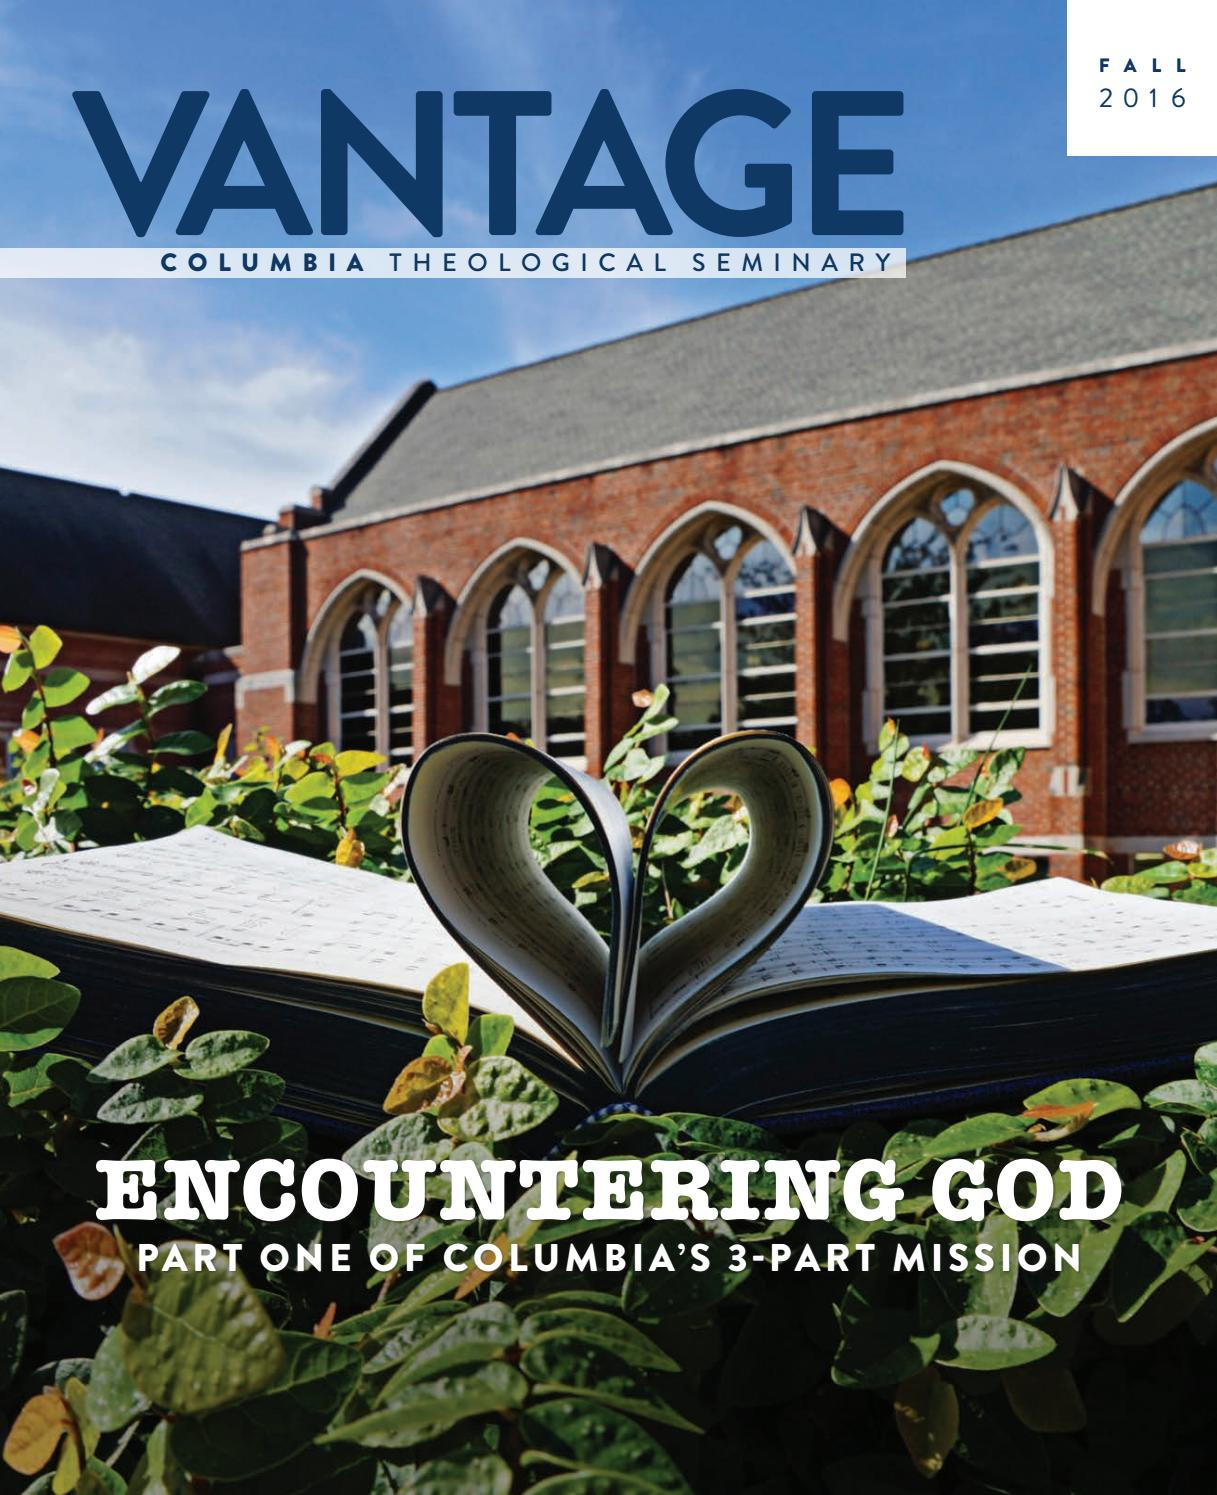 6f5257de26 Vantage Fall 2016 by Columbia Theological Seminary - issuu